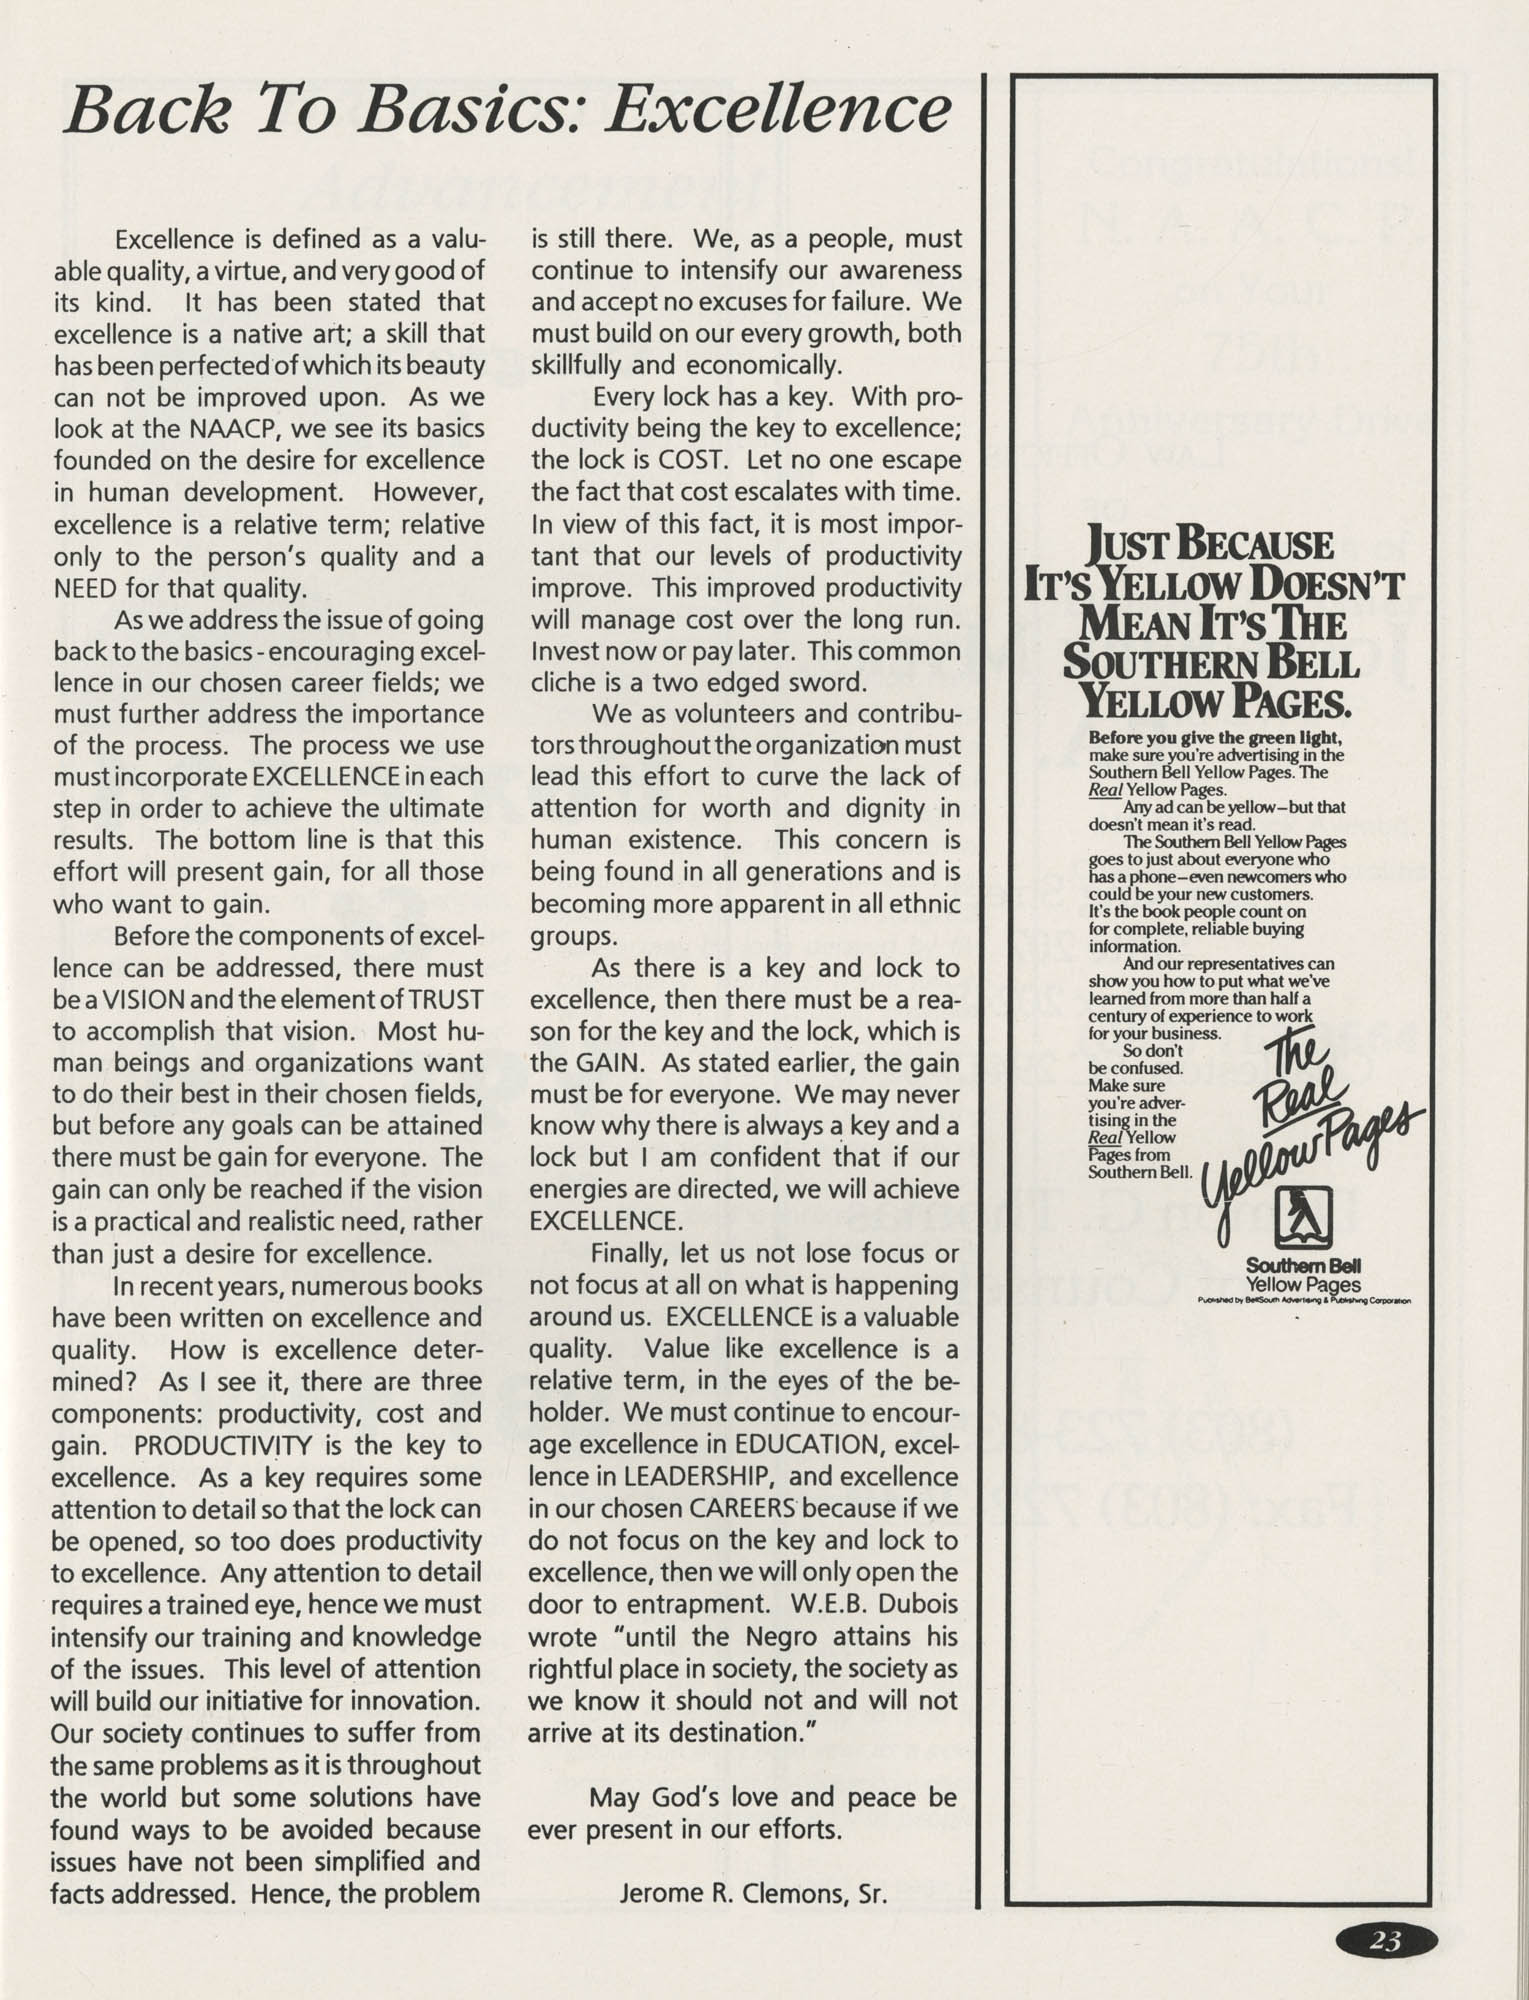 1991 Freedom Fund Magazine, Charleston Branch of the NAACP, Page 23